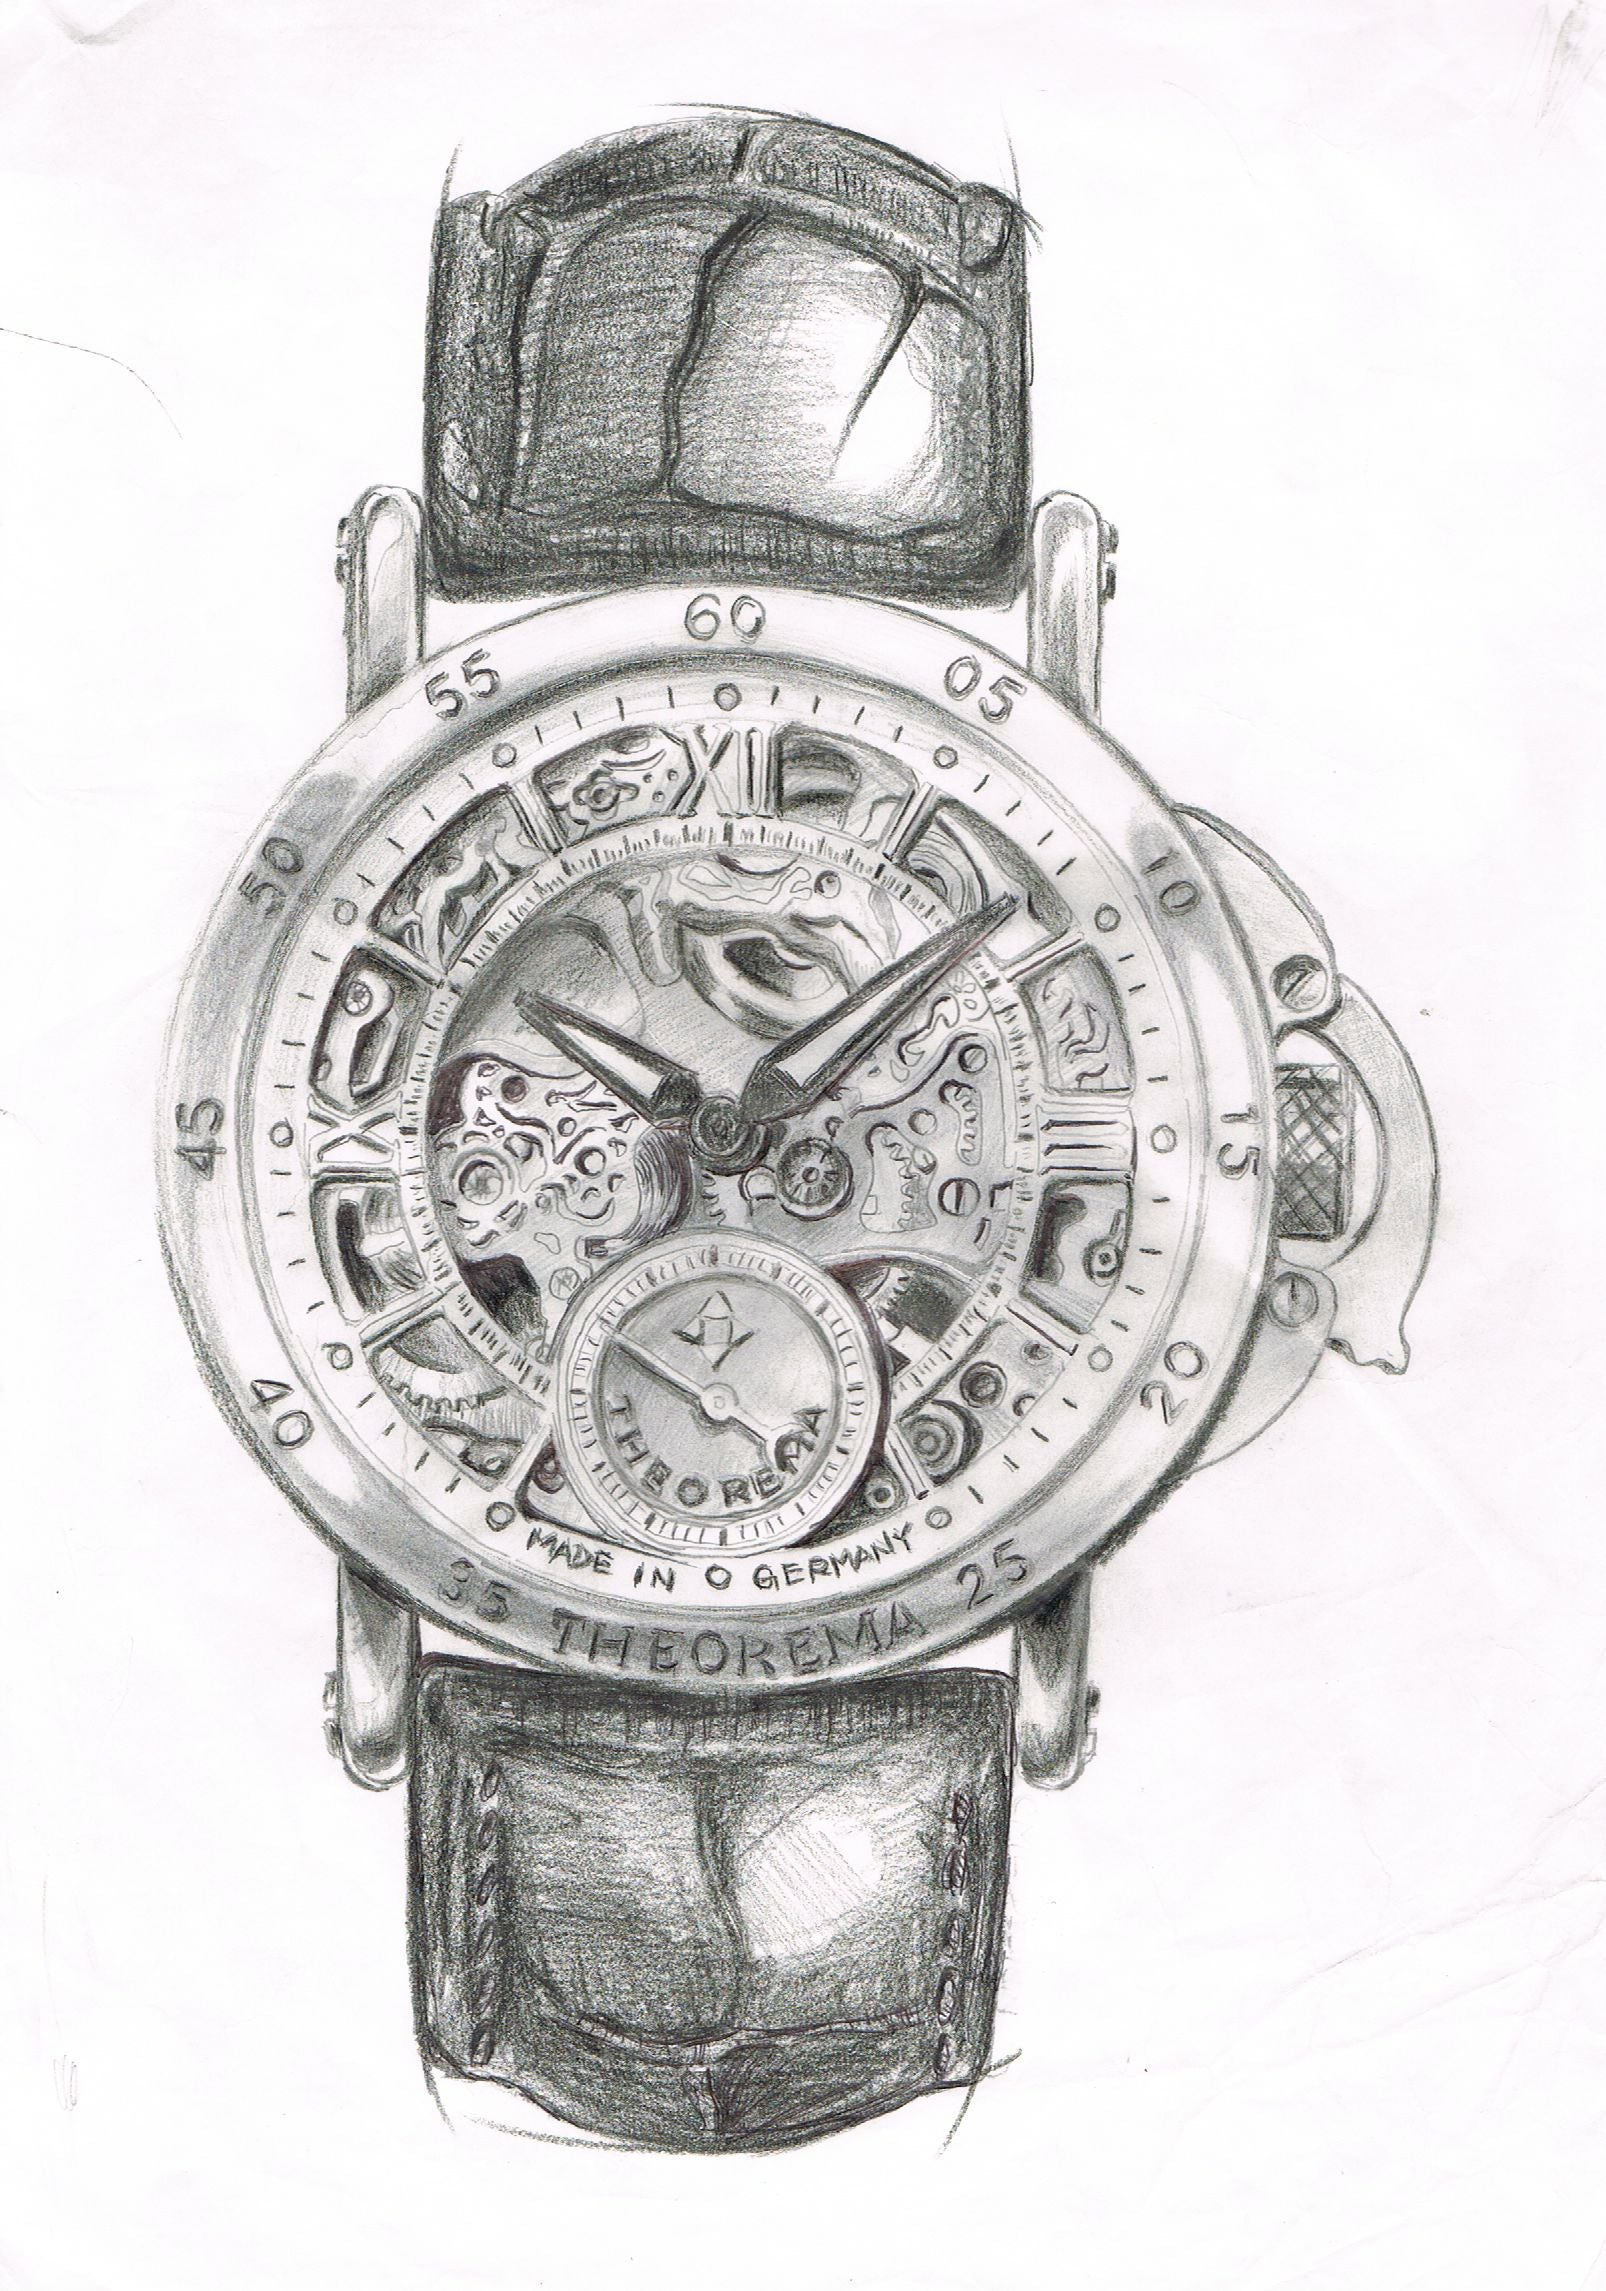 be device vector mechanical gears watches with as the of drawing hd image stock it internal an can used example